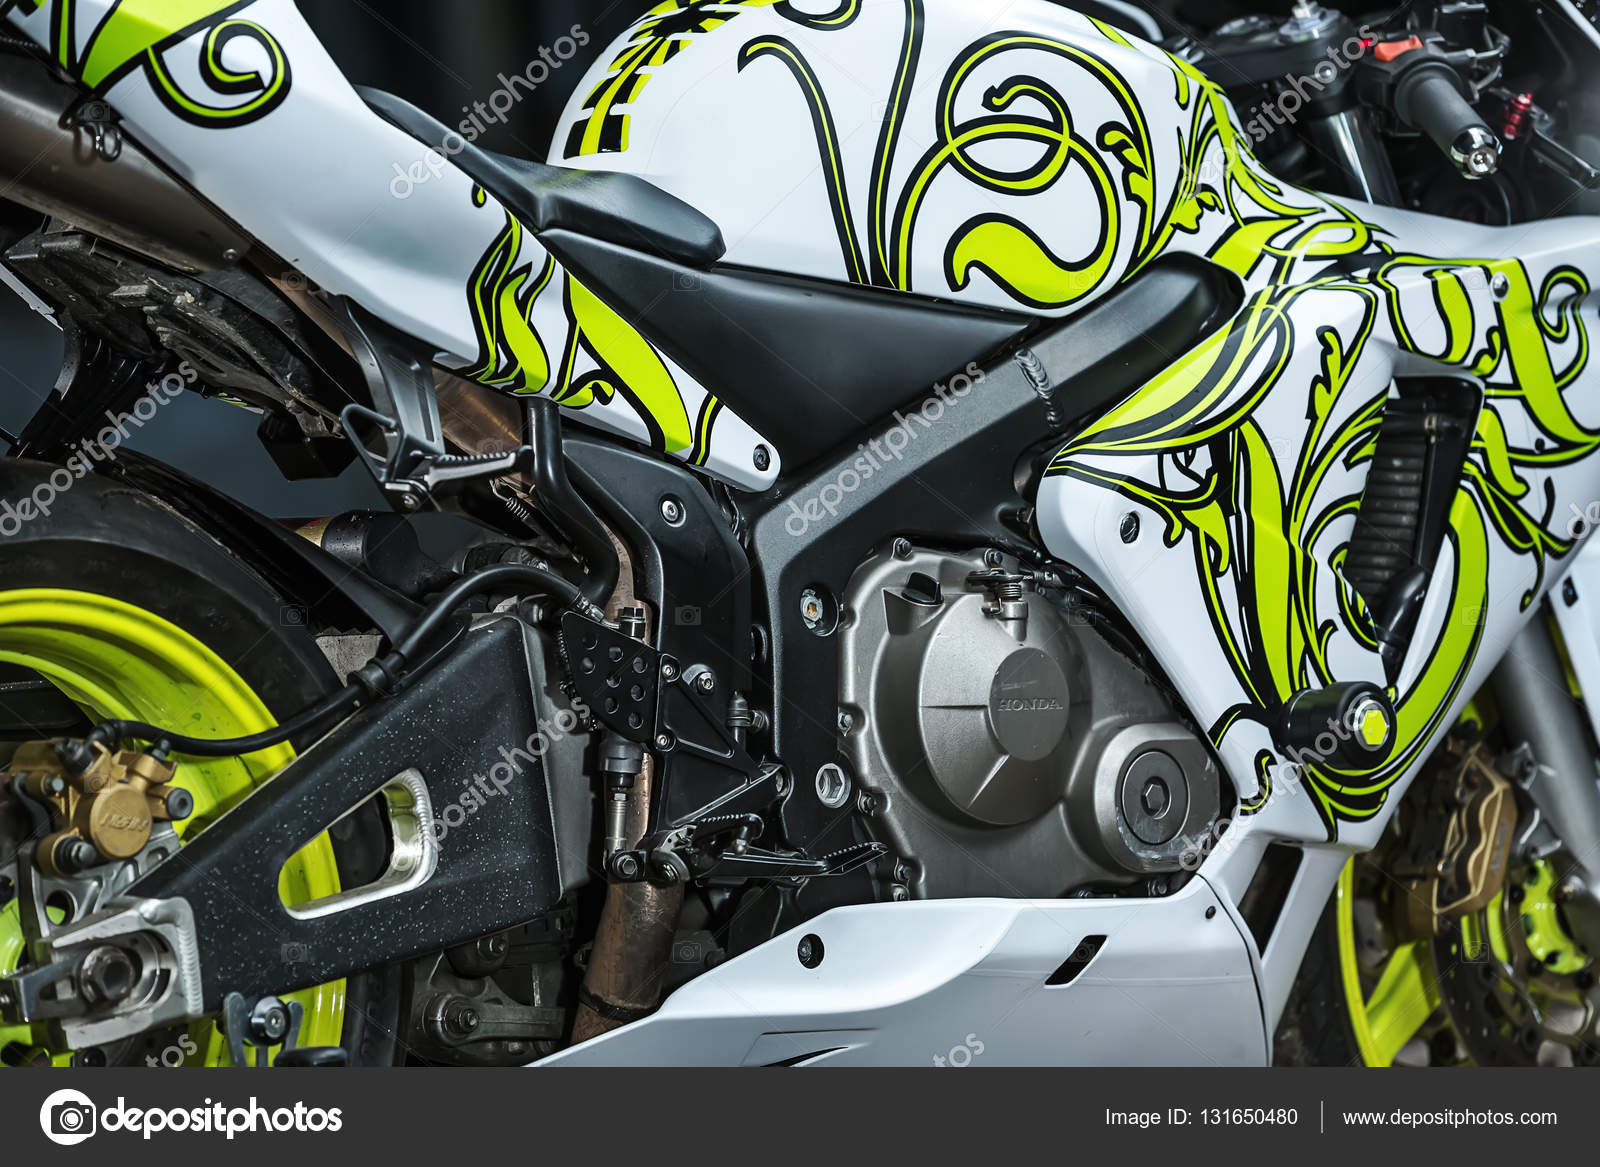 kiev ukraine 14 may 2014 honda tuning sport motorcycle it colored in white color with lime prints editorial photo closeup side view - Moto Tuning